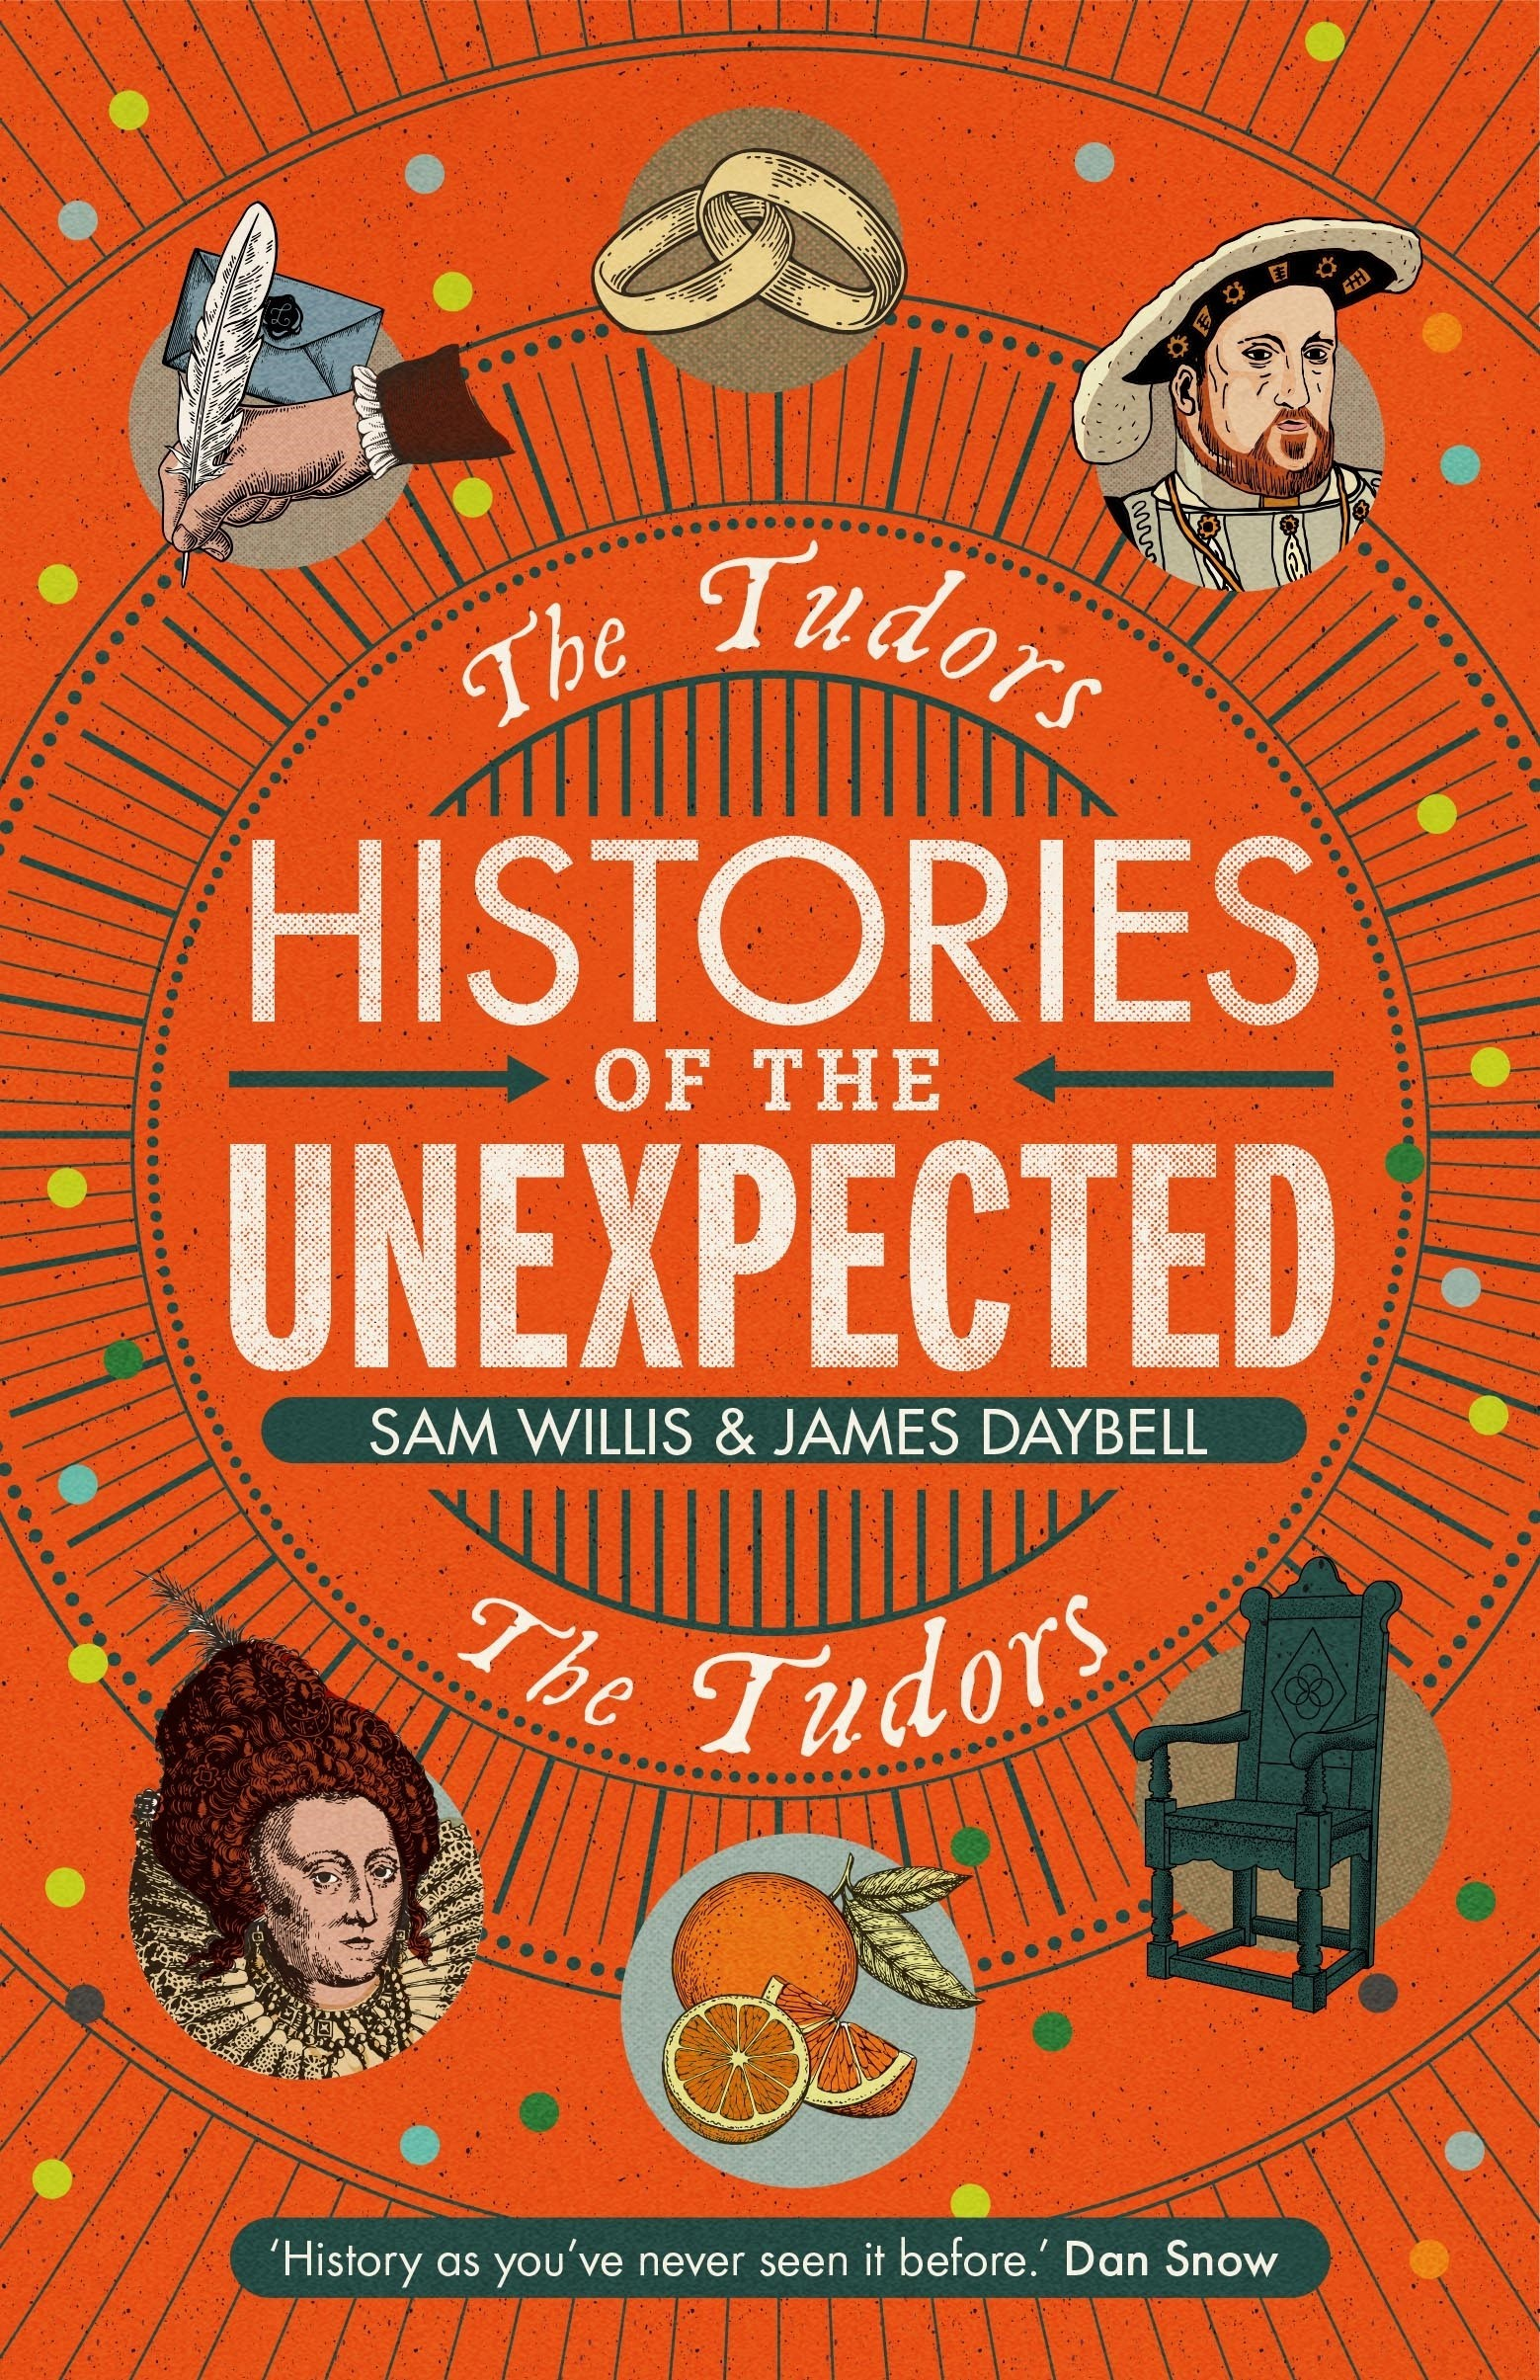 Histories of the Unexpected: The Tudors